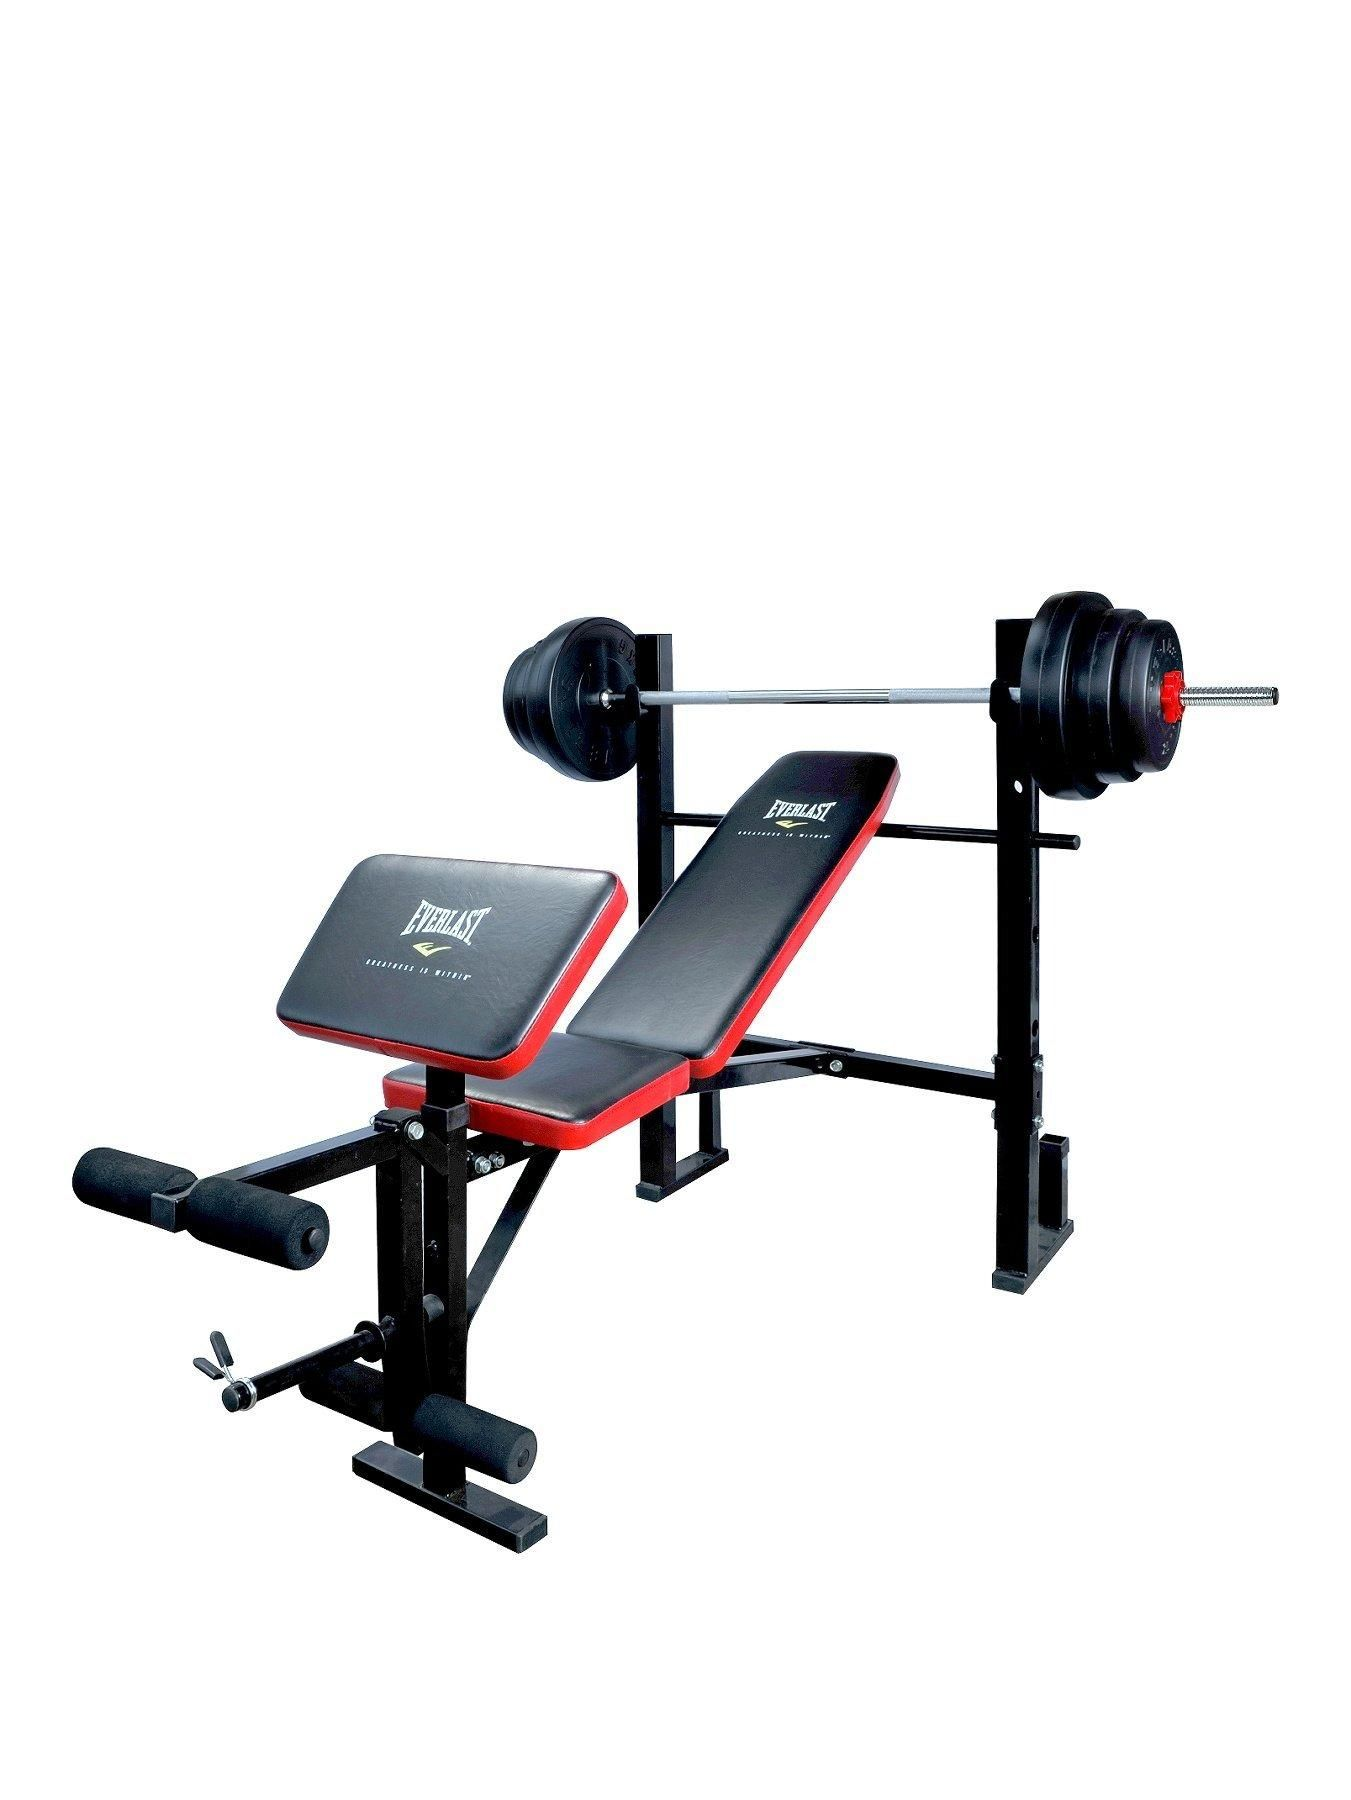 ip flat pure walmart and bench weight com workout fitness weights